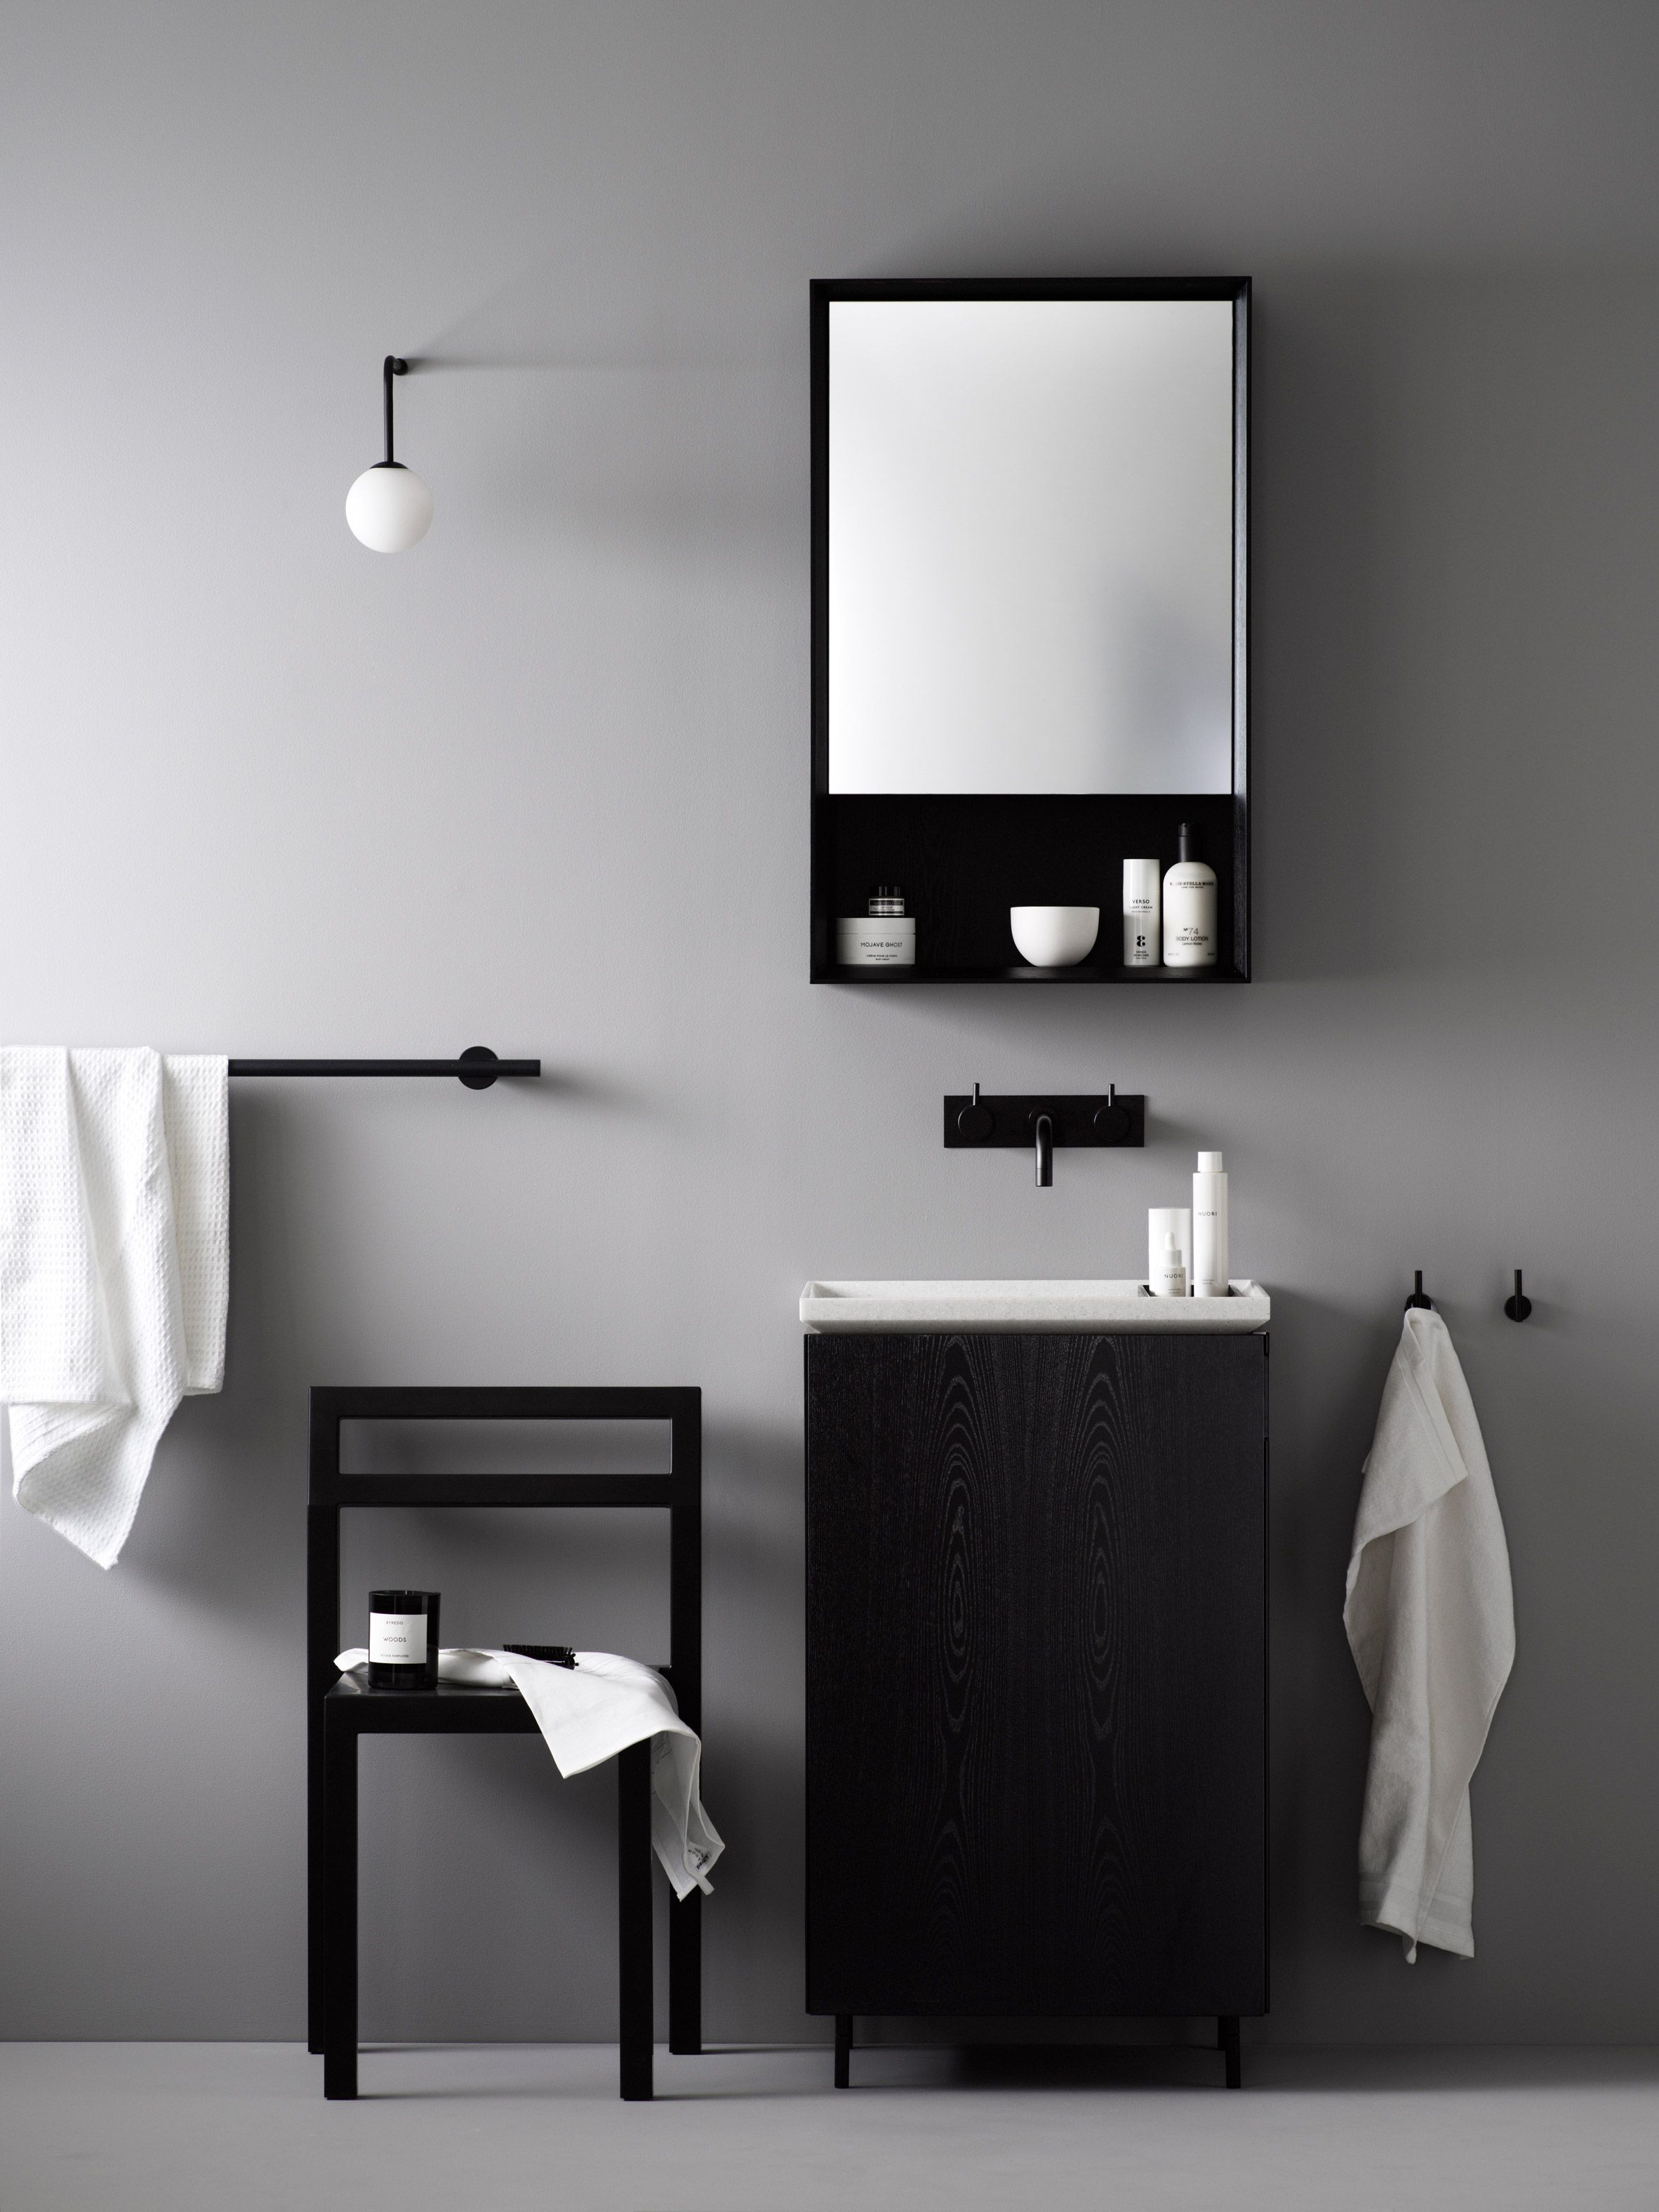 Norm Architects Has Created A Collection Of Minimal Bathroom Cabinets And Accessories For Korean Brand Lagom